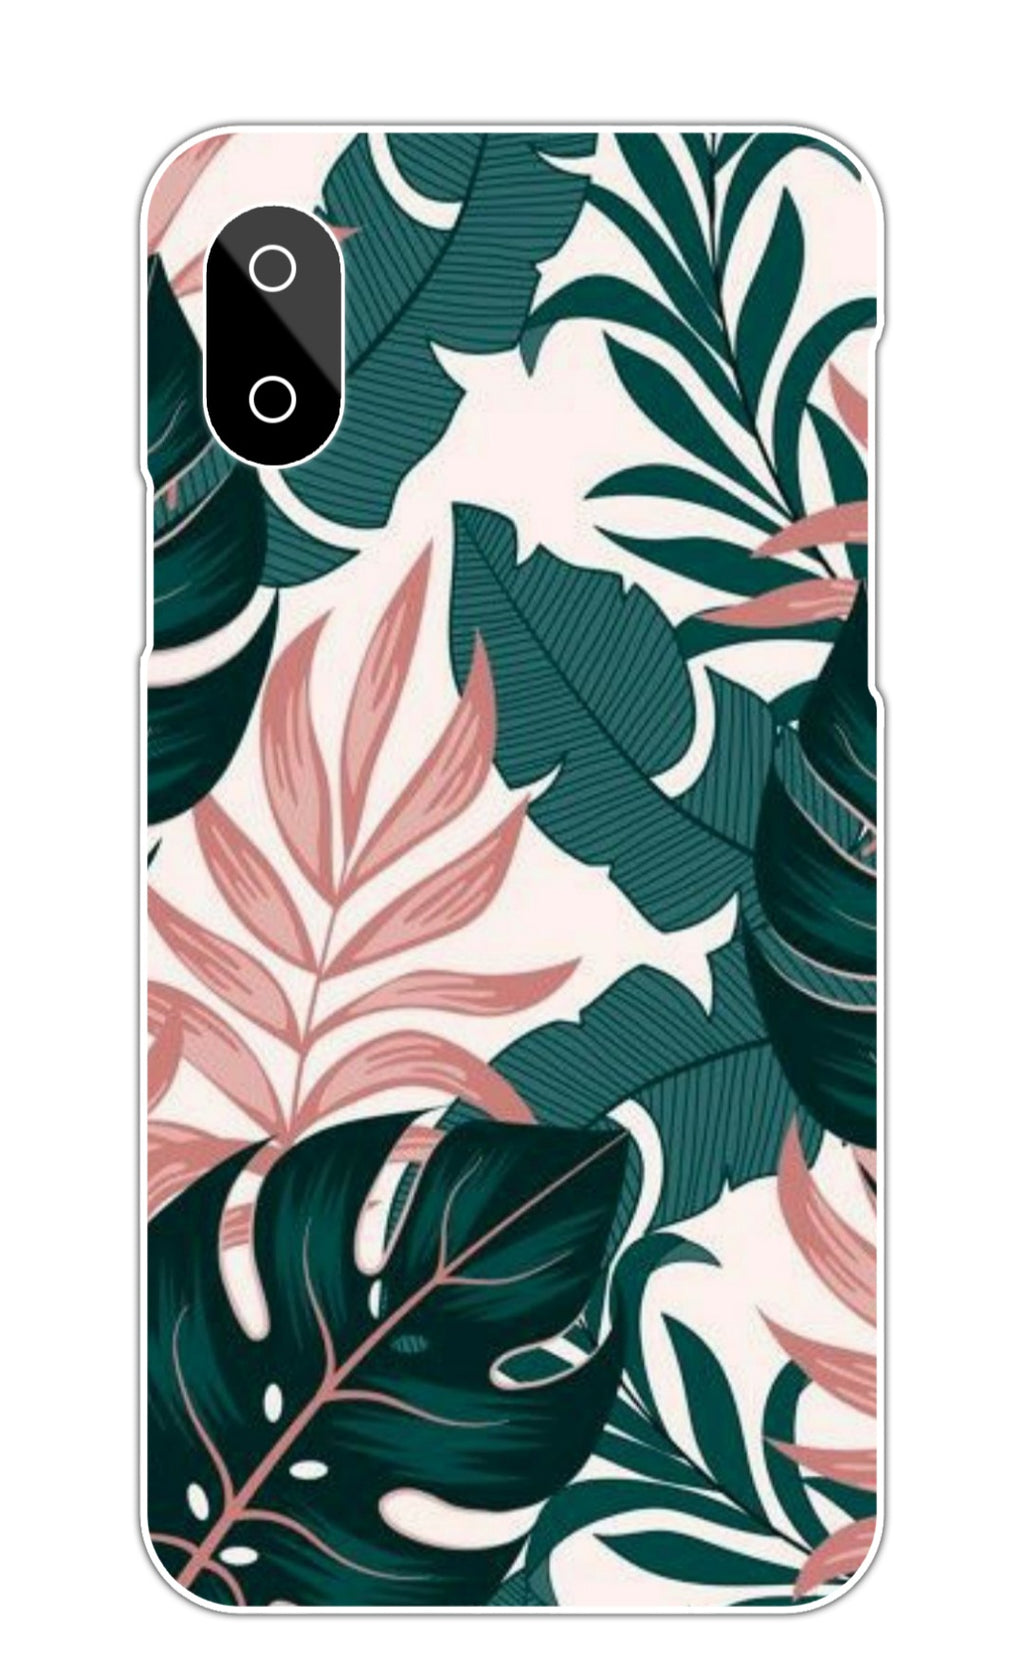 LEAVES DESIGN CASE